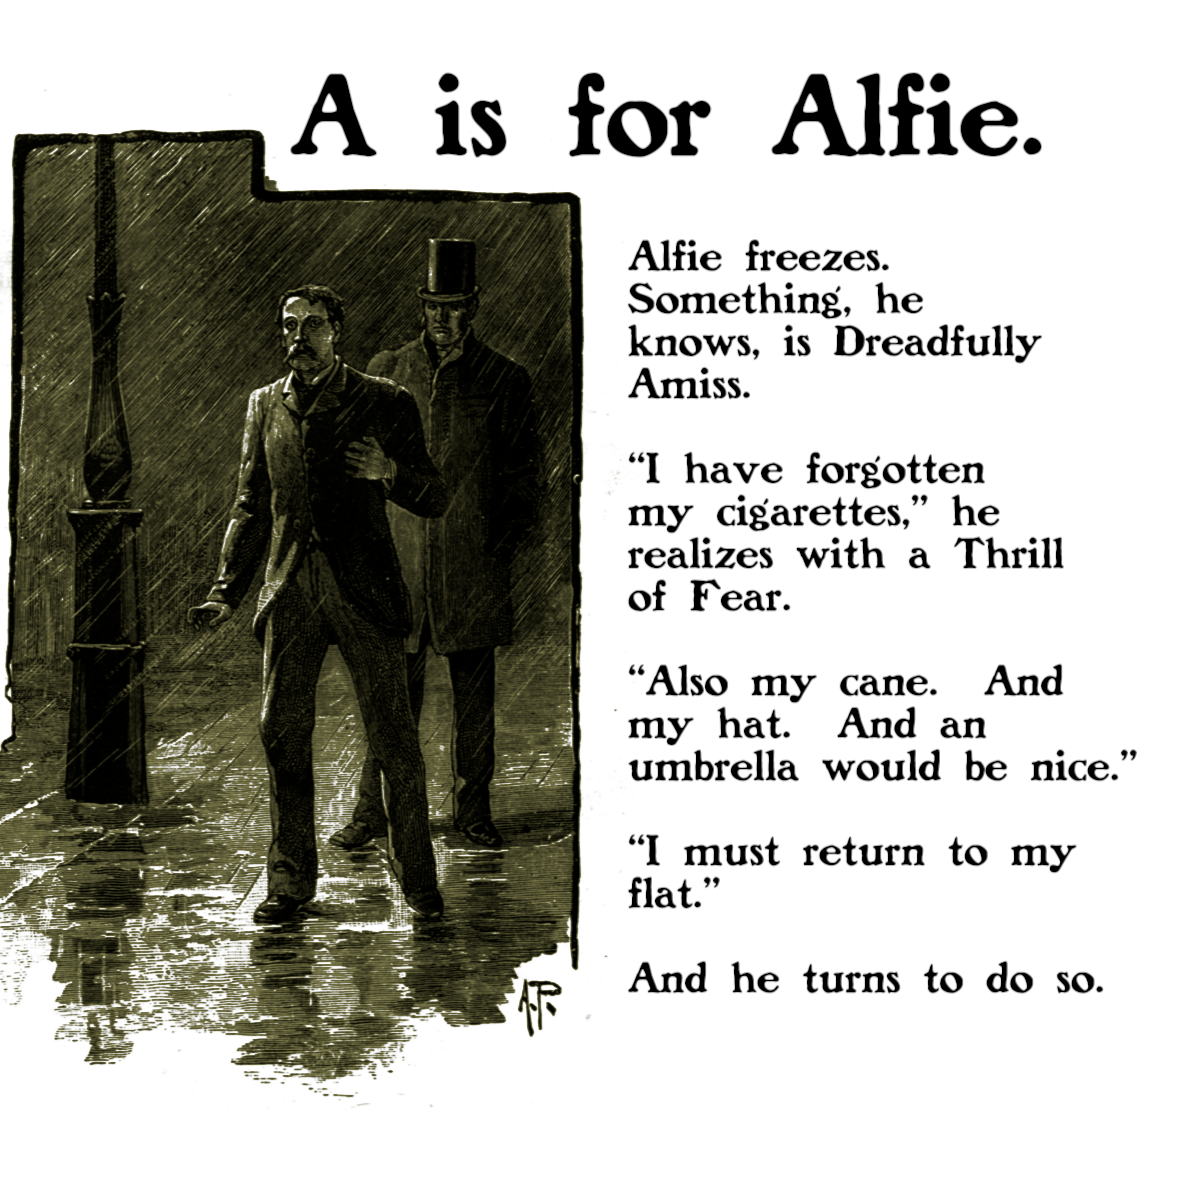 A is for Alfie